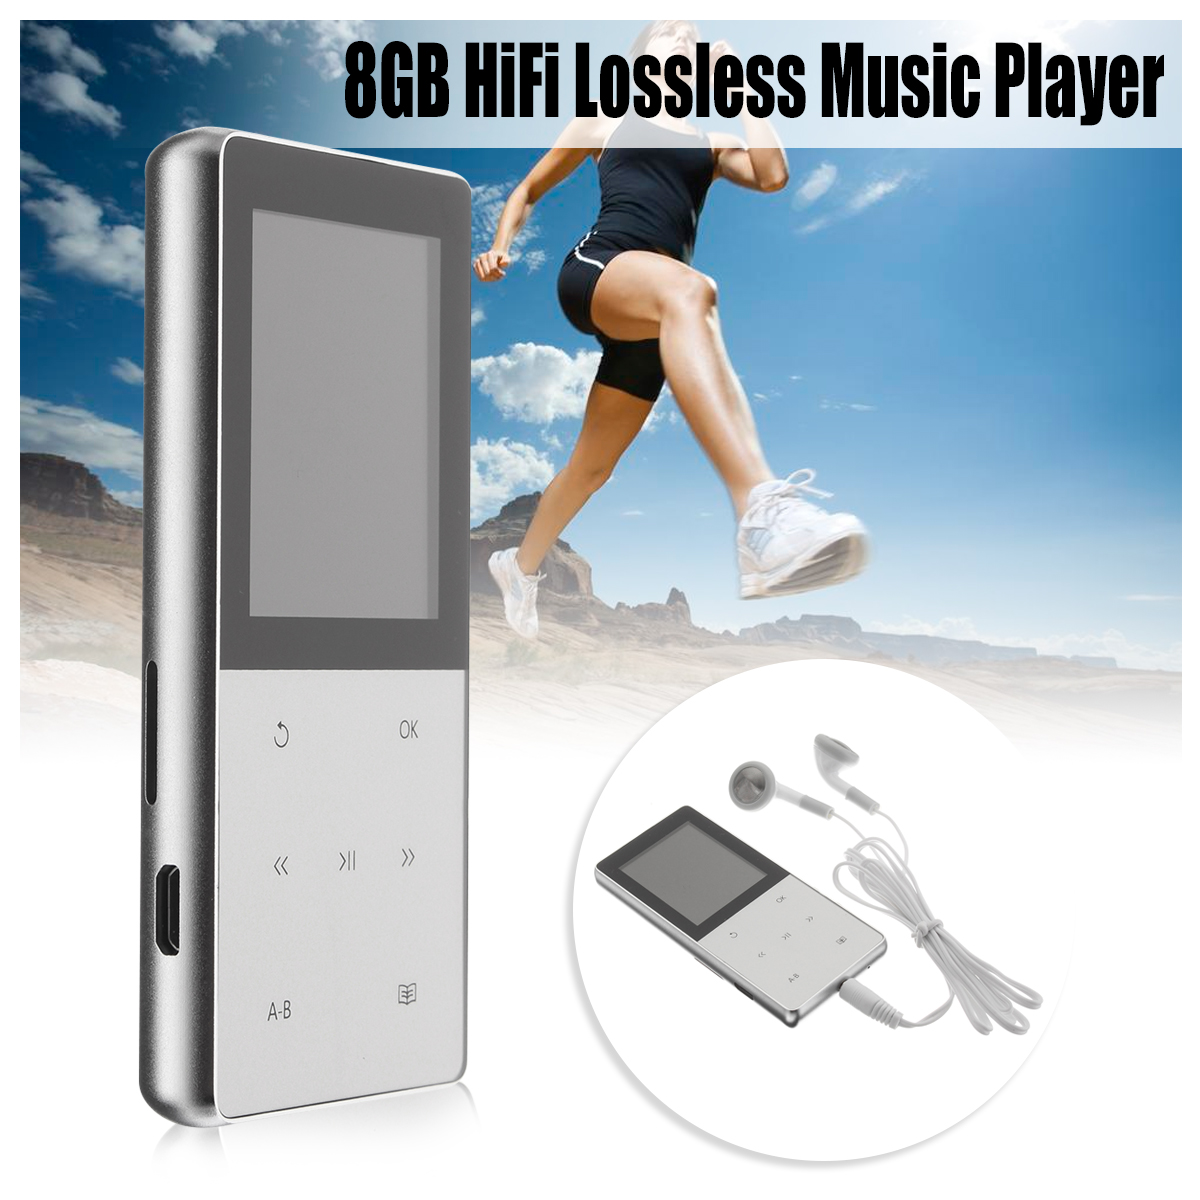 1.8 inch Sport MP3 Player HiFi Lossless Music Player Portable Audio 8GB A6 TFT LED HiFi Screen FM USB SD with Earphone